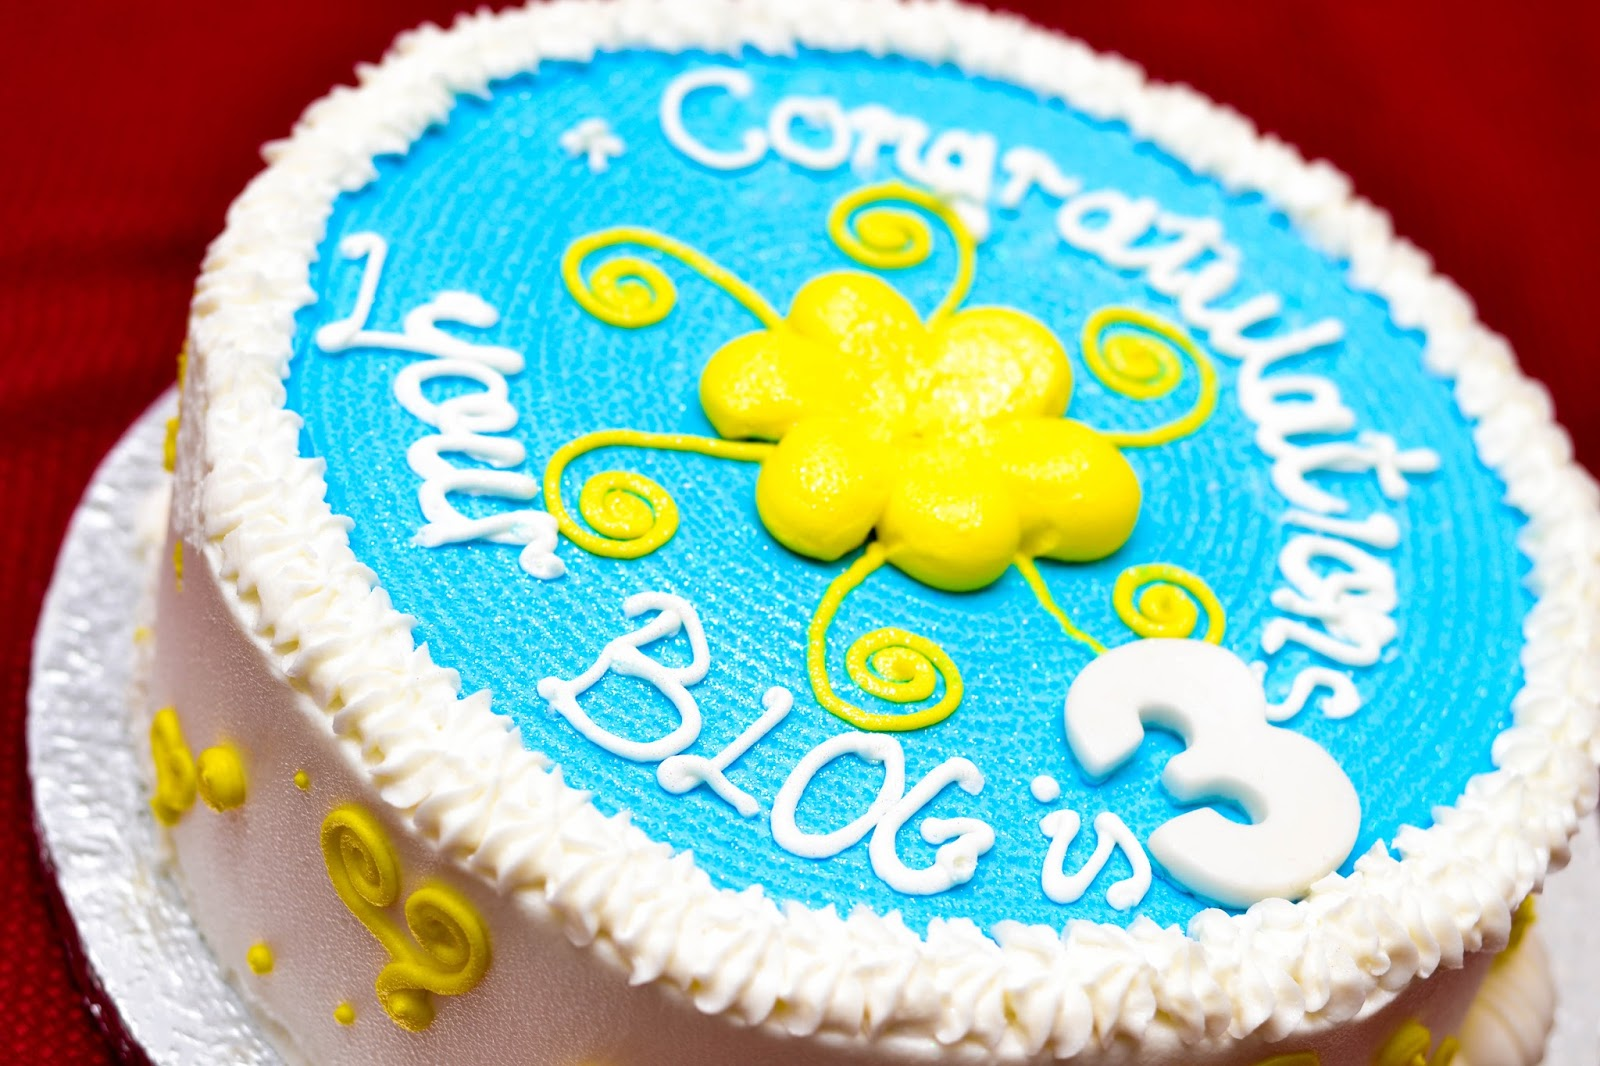 Blogversary Cake with Blue, White and Yellow Icing